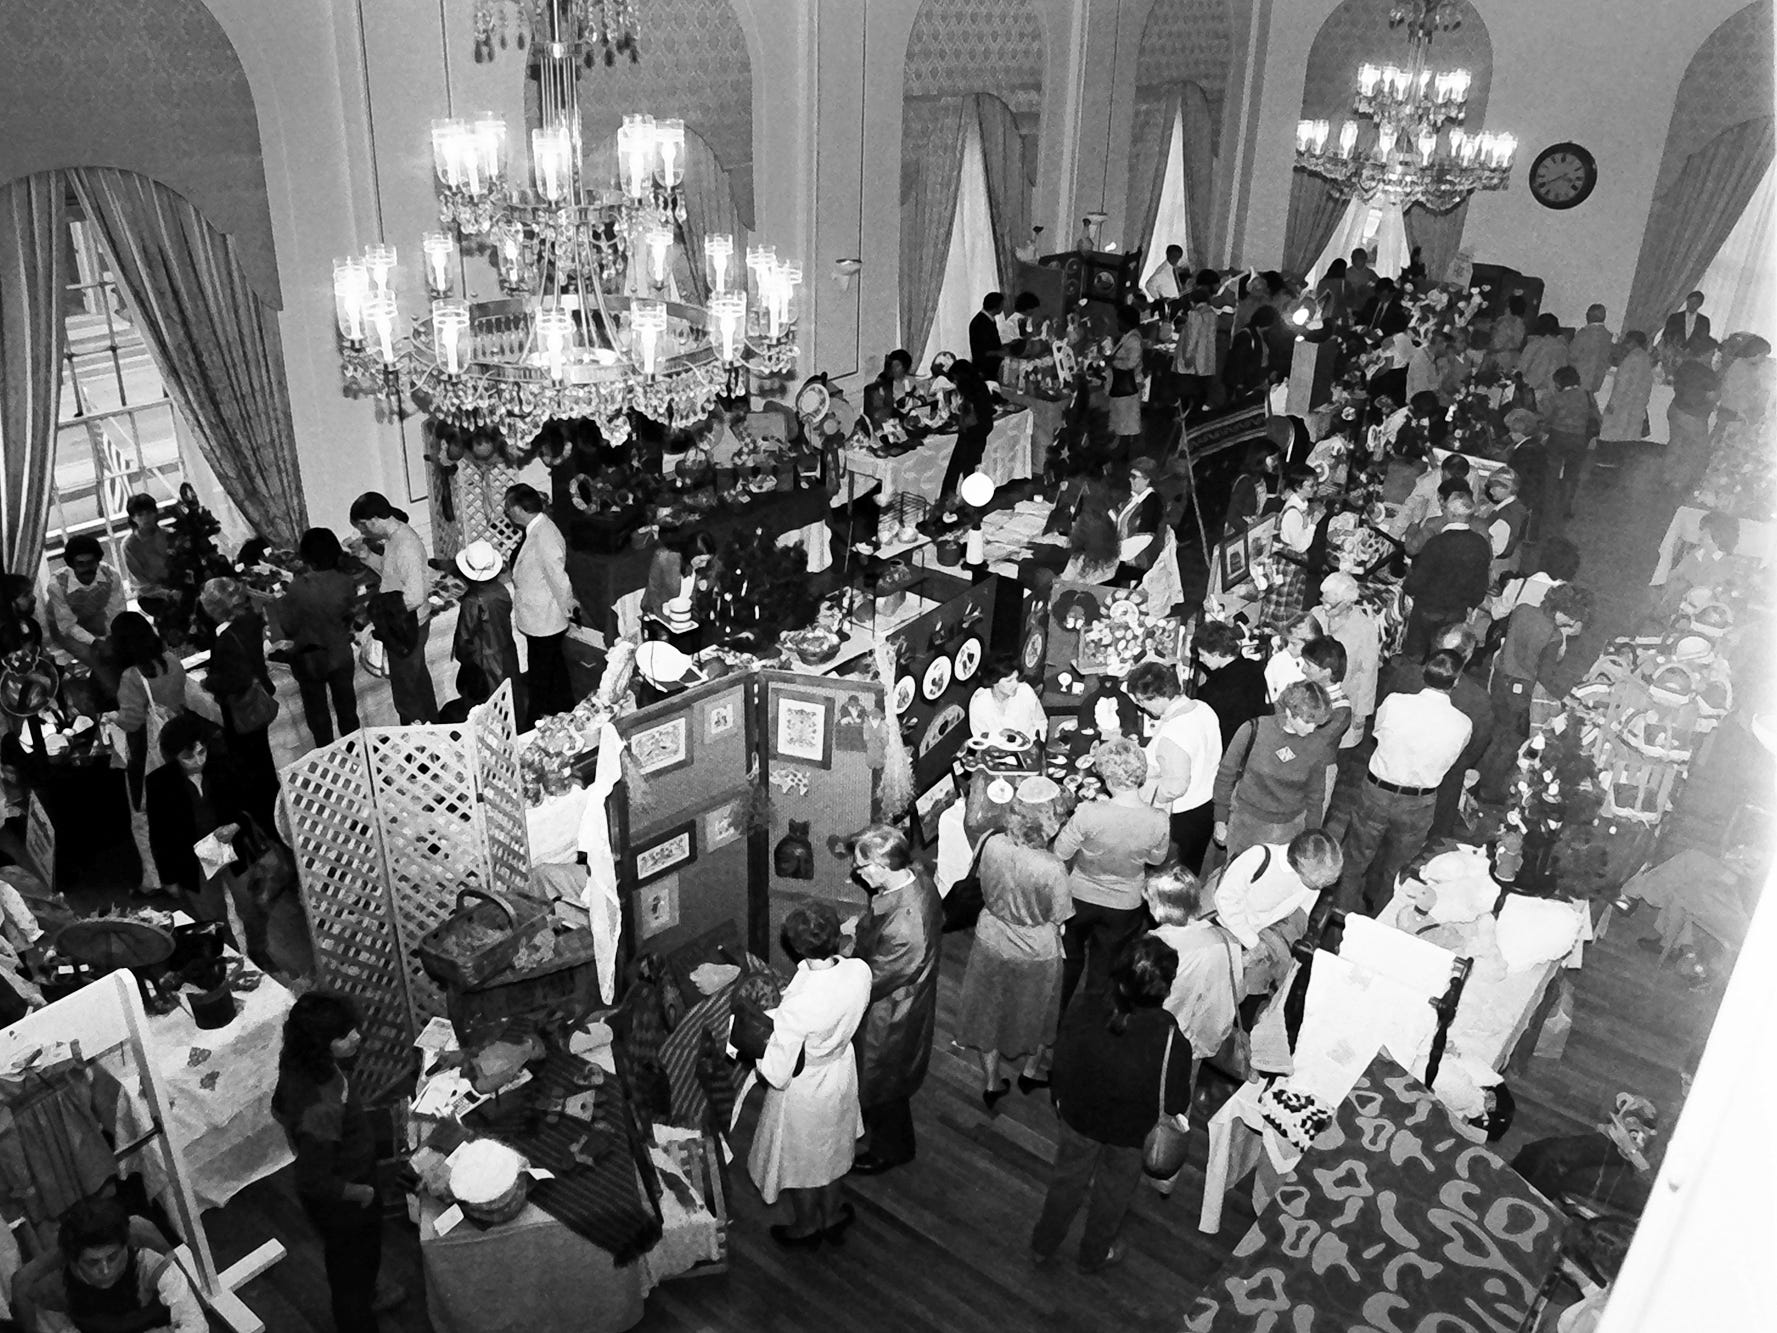 In 1985, there was a craft show in the ballroom of the Yorktowne Hotel.